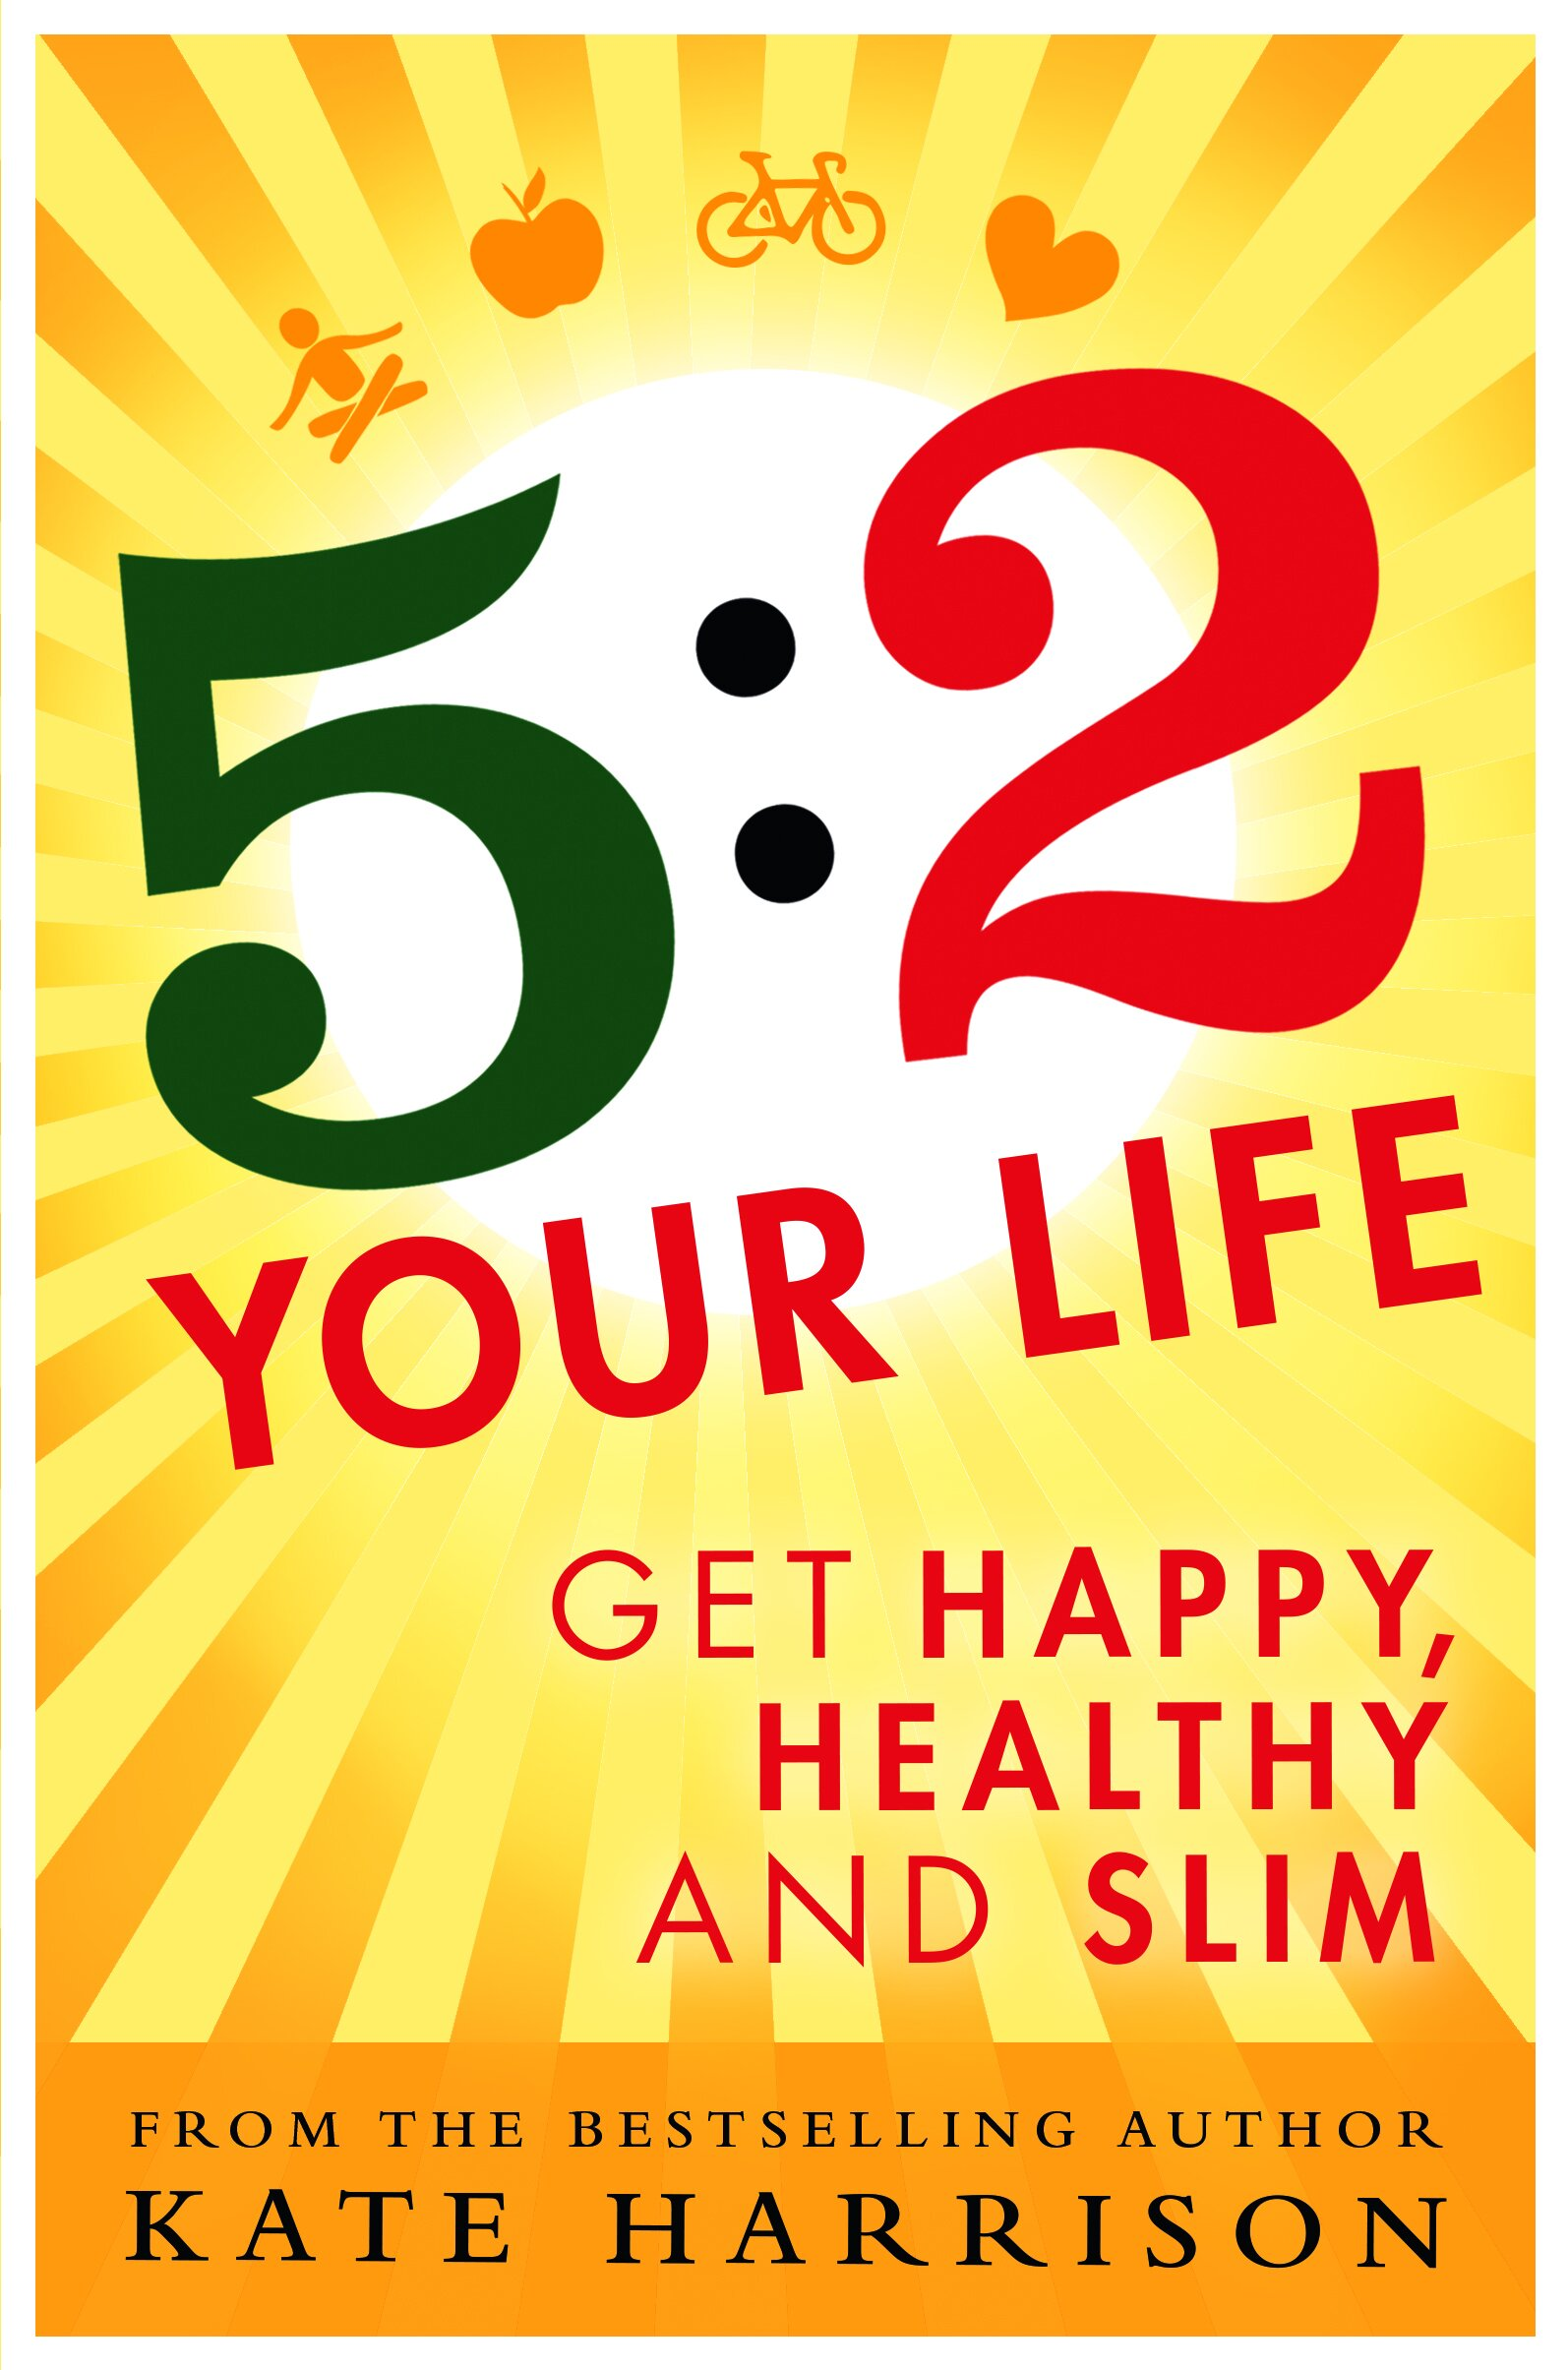 52 Your Life